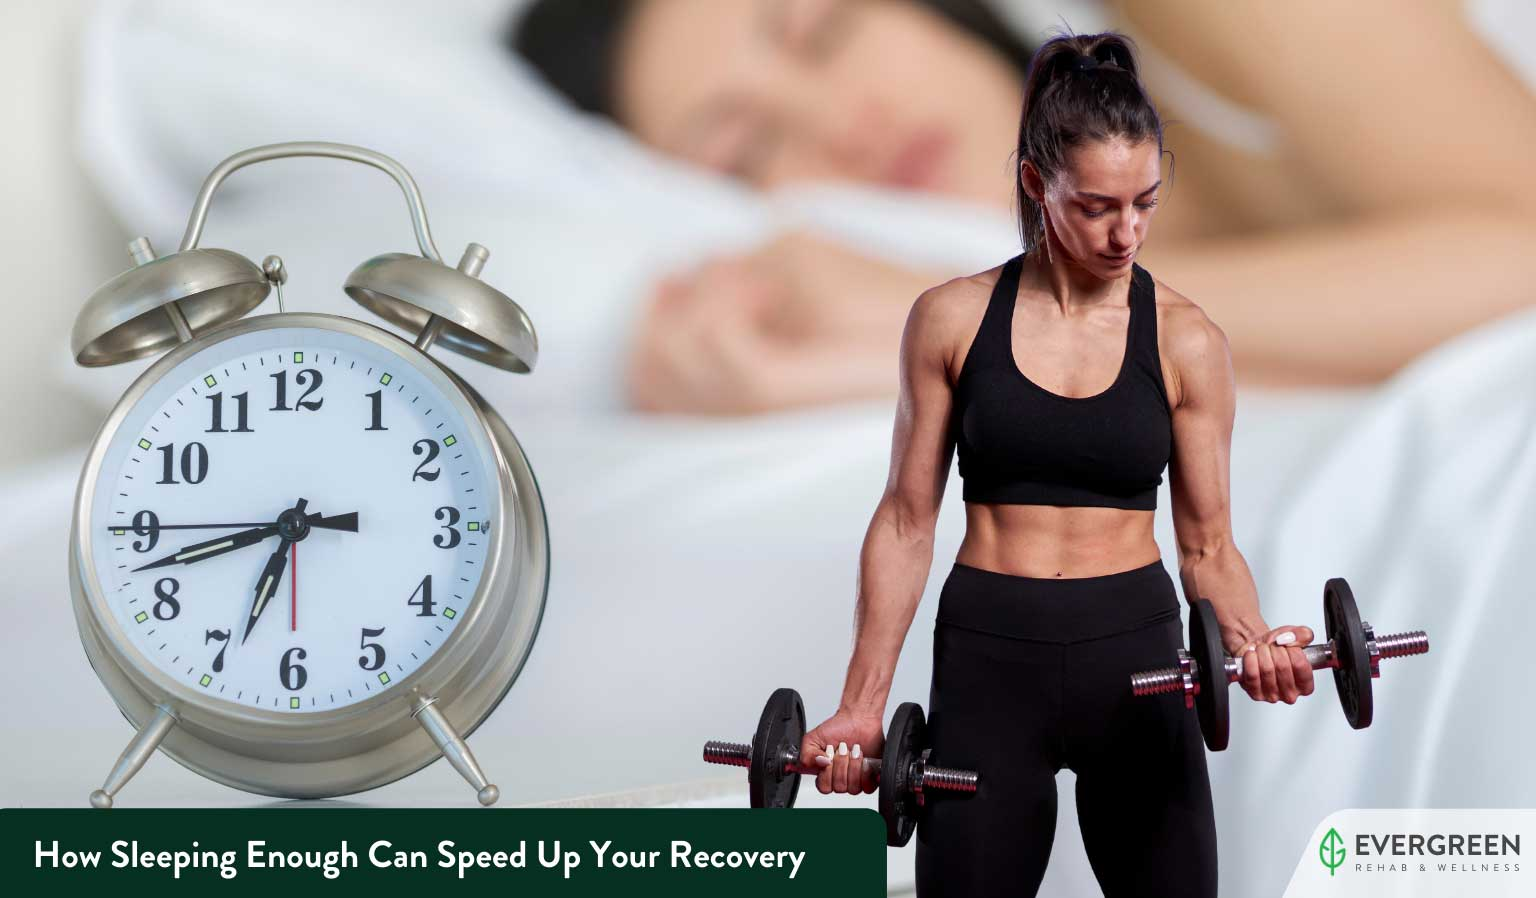 How Sleeping Enough Can Speed Up Your Recovery